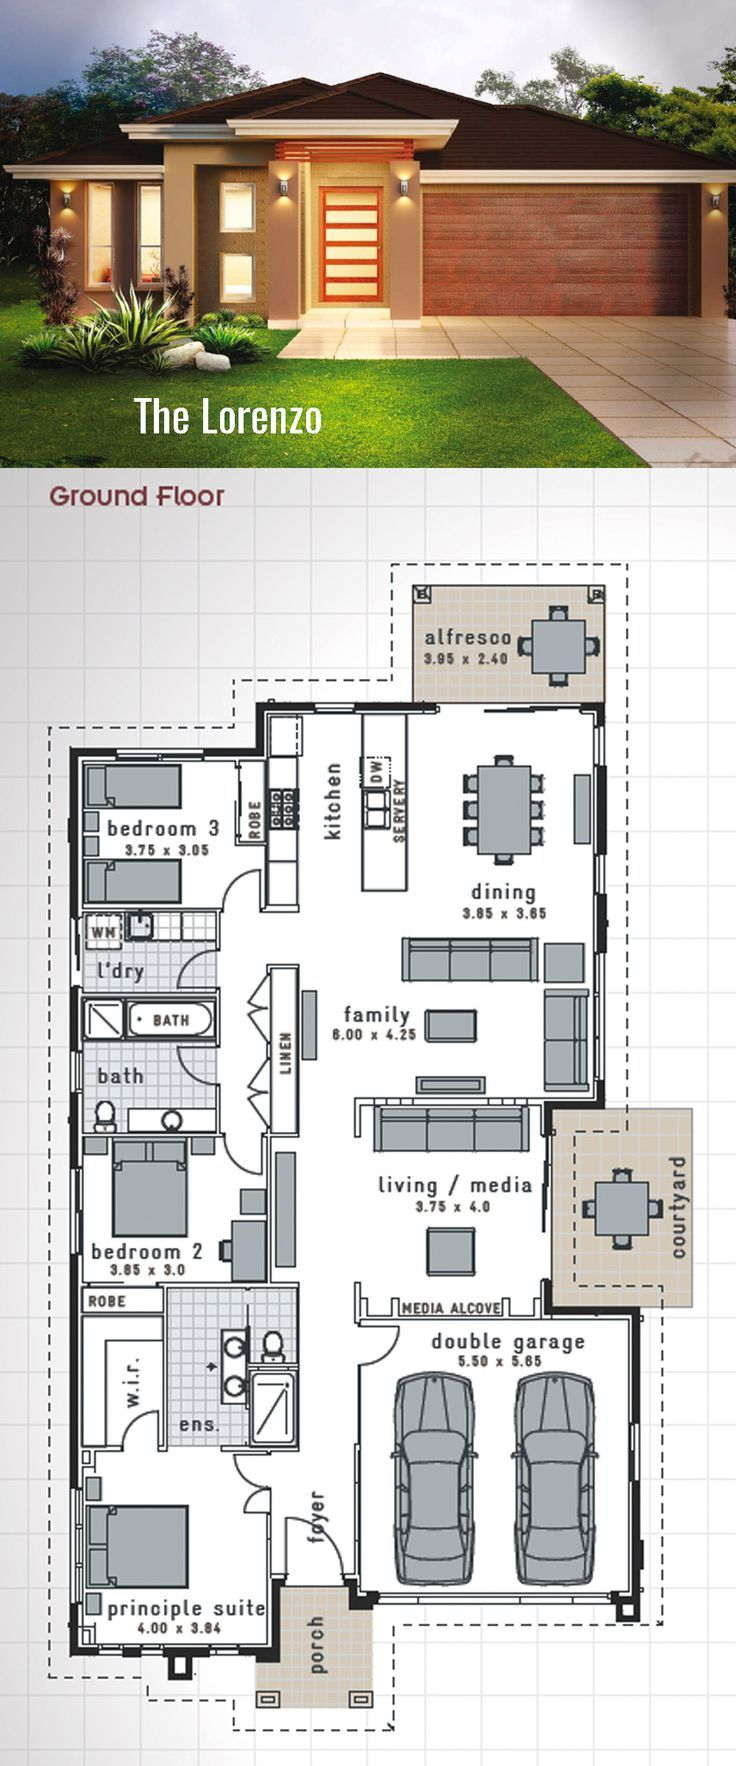 The 25 best ideas about double storey house plans on for 1 story elevator